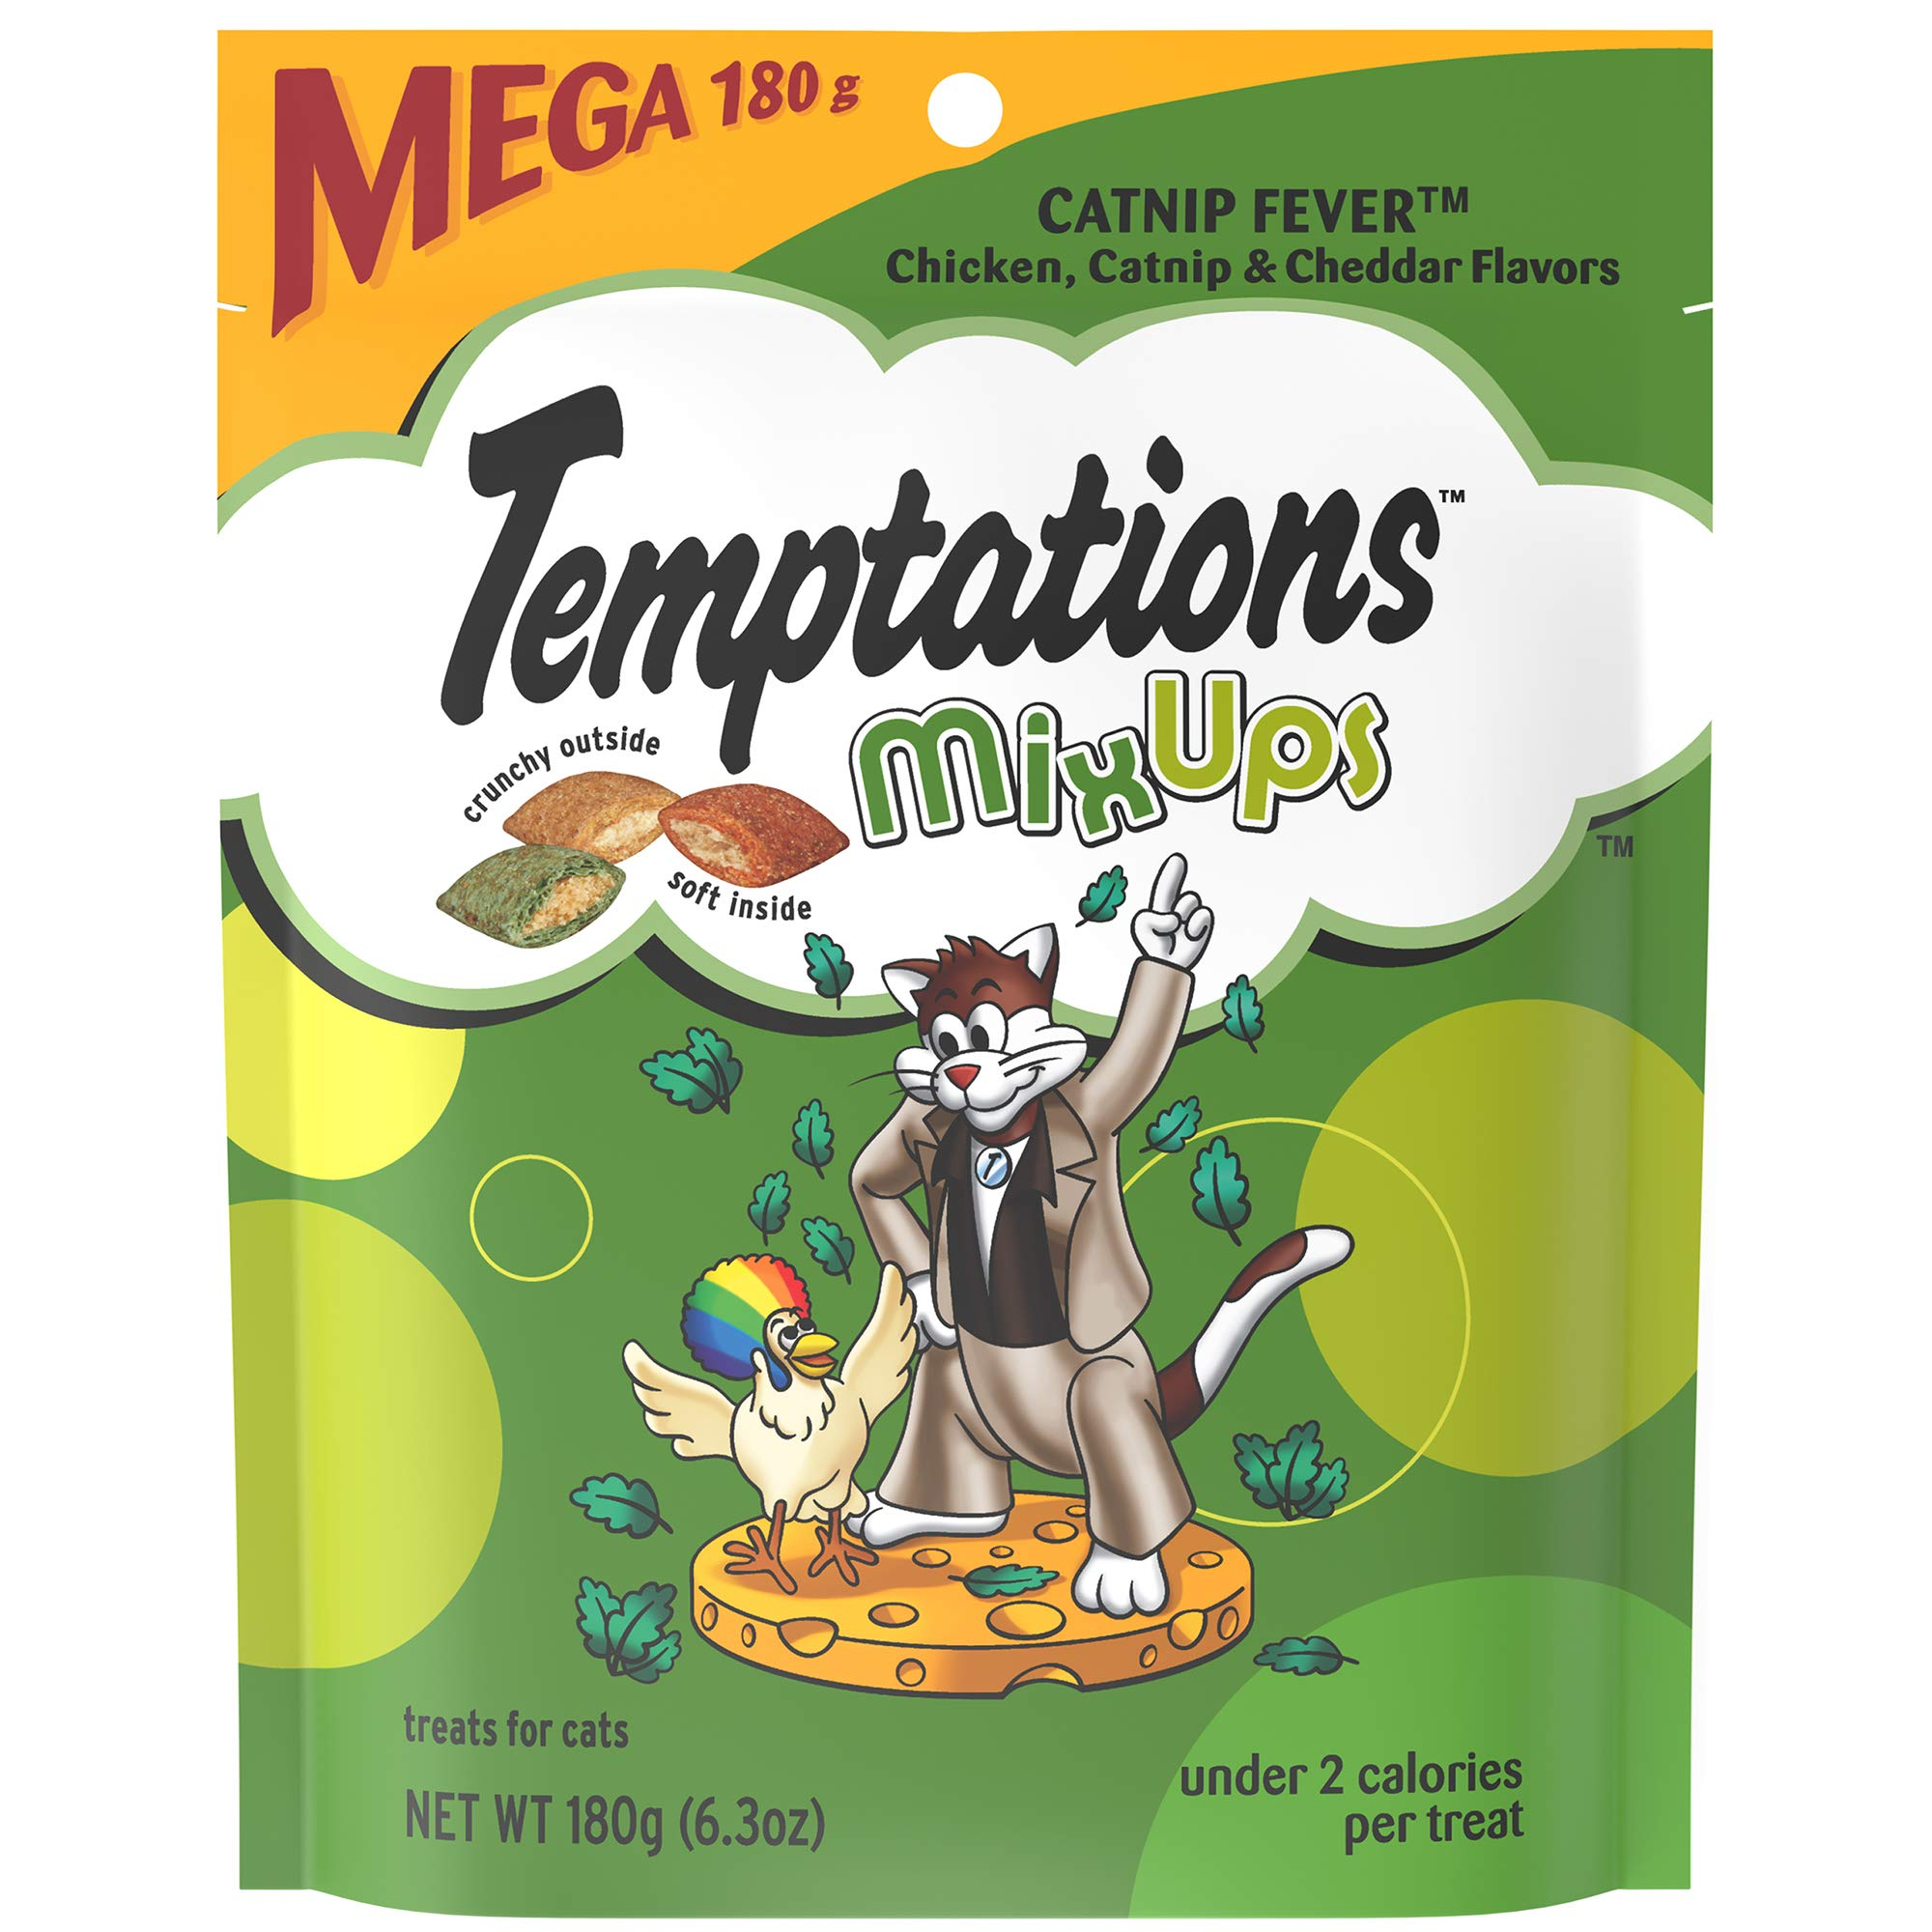 Temptations Mixups Cat Treats Catnip Fever Flavor, (10) 6.3 Oz. Pouches by Temptations